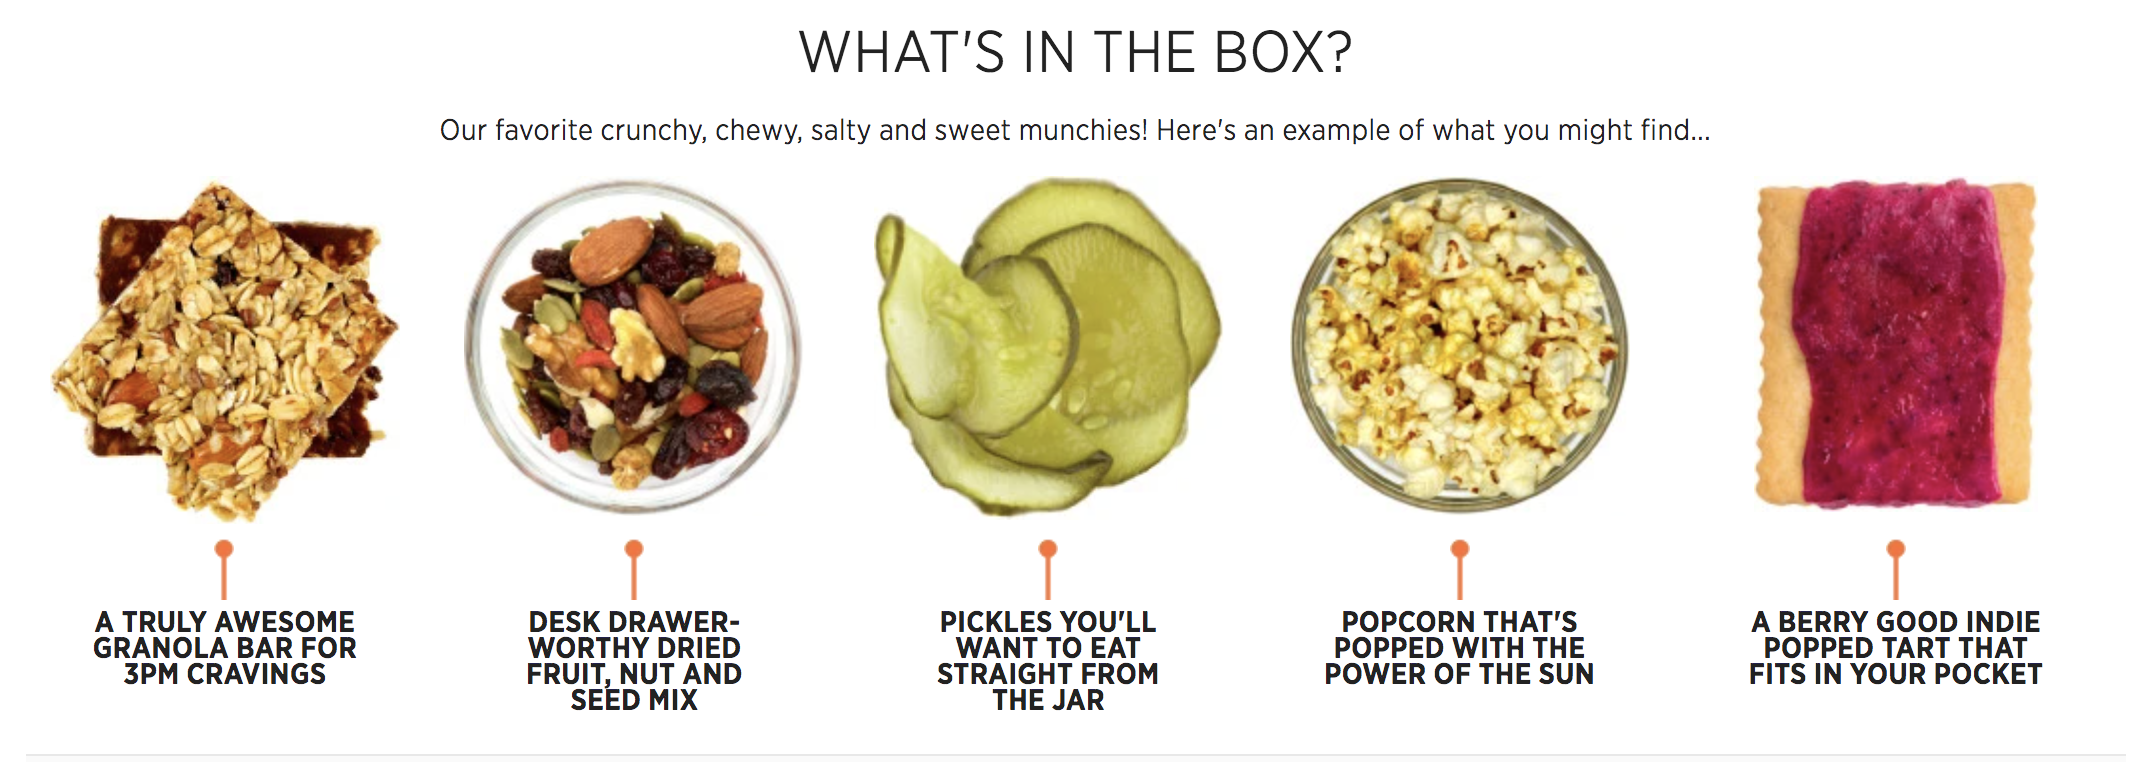 Examples of what can come in the box, like a nut and fruit mix, granola bars, pickles, popcorn, and fancy Poptarts